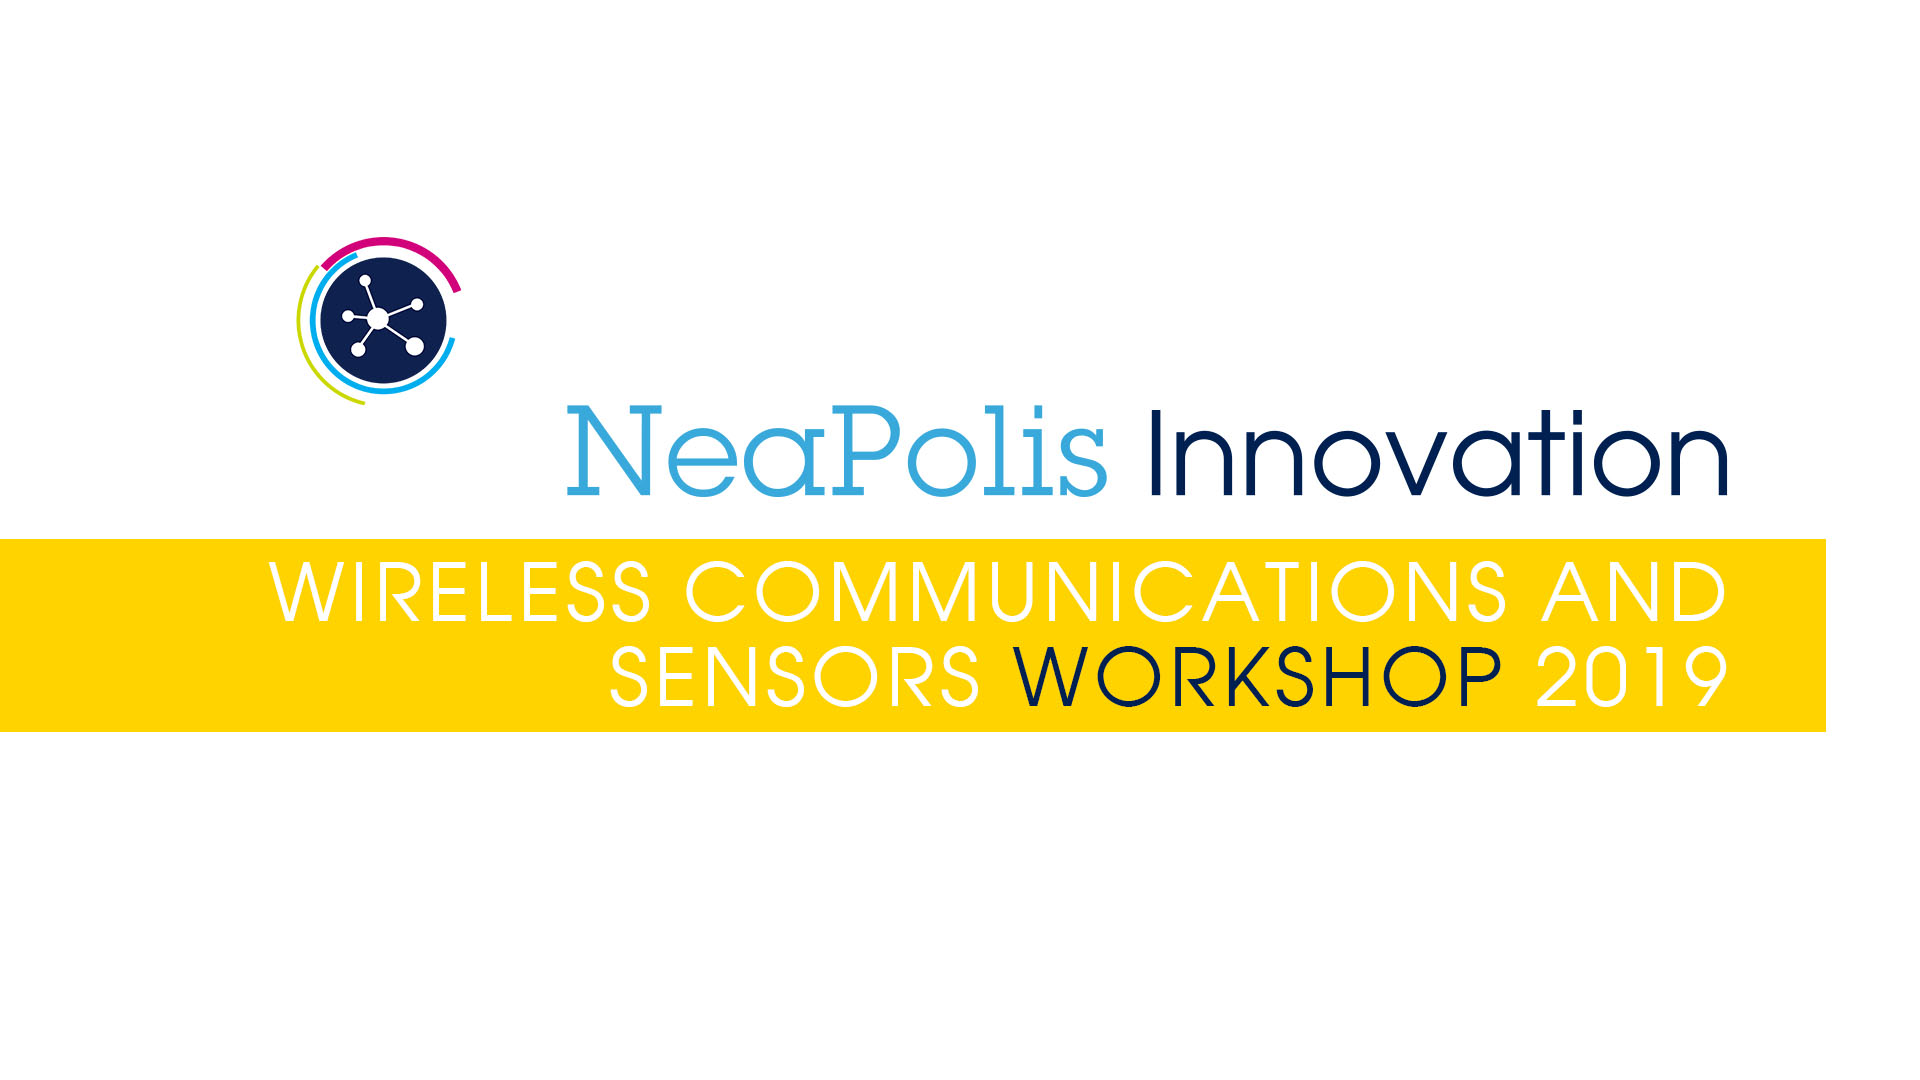 Wireless communications and sensors workshop 2019